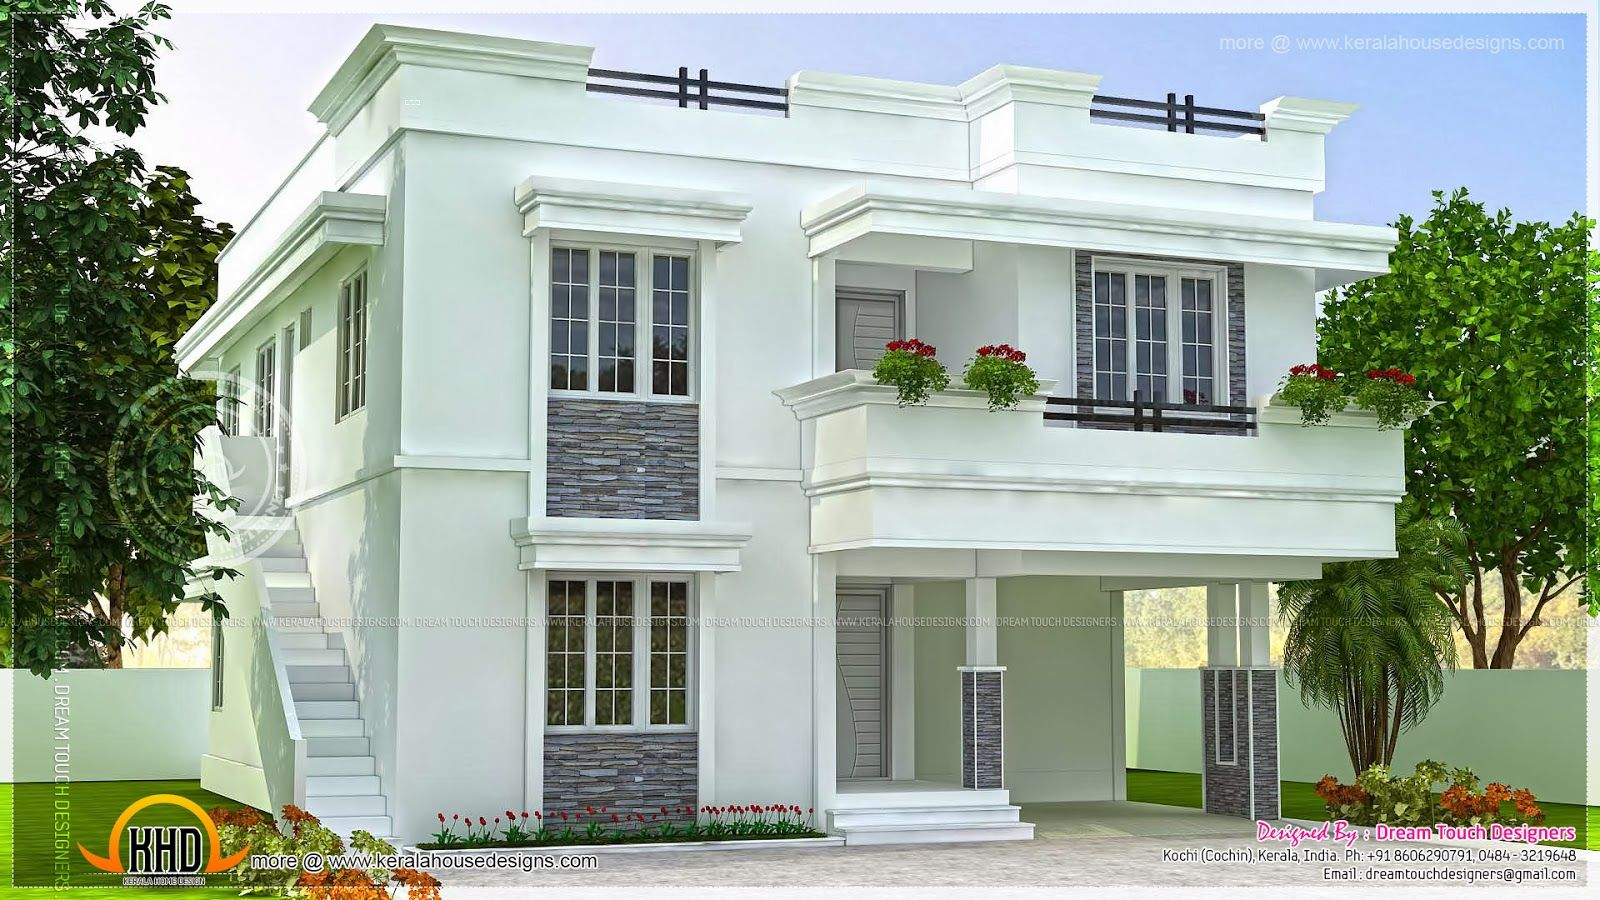 modern beautiful home modern beautiful home design indian house plans - Home Design House Plans